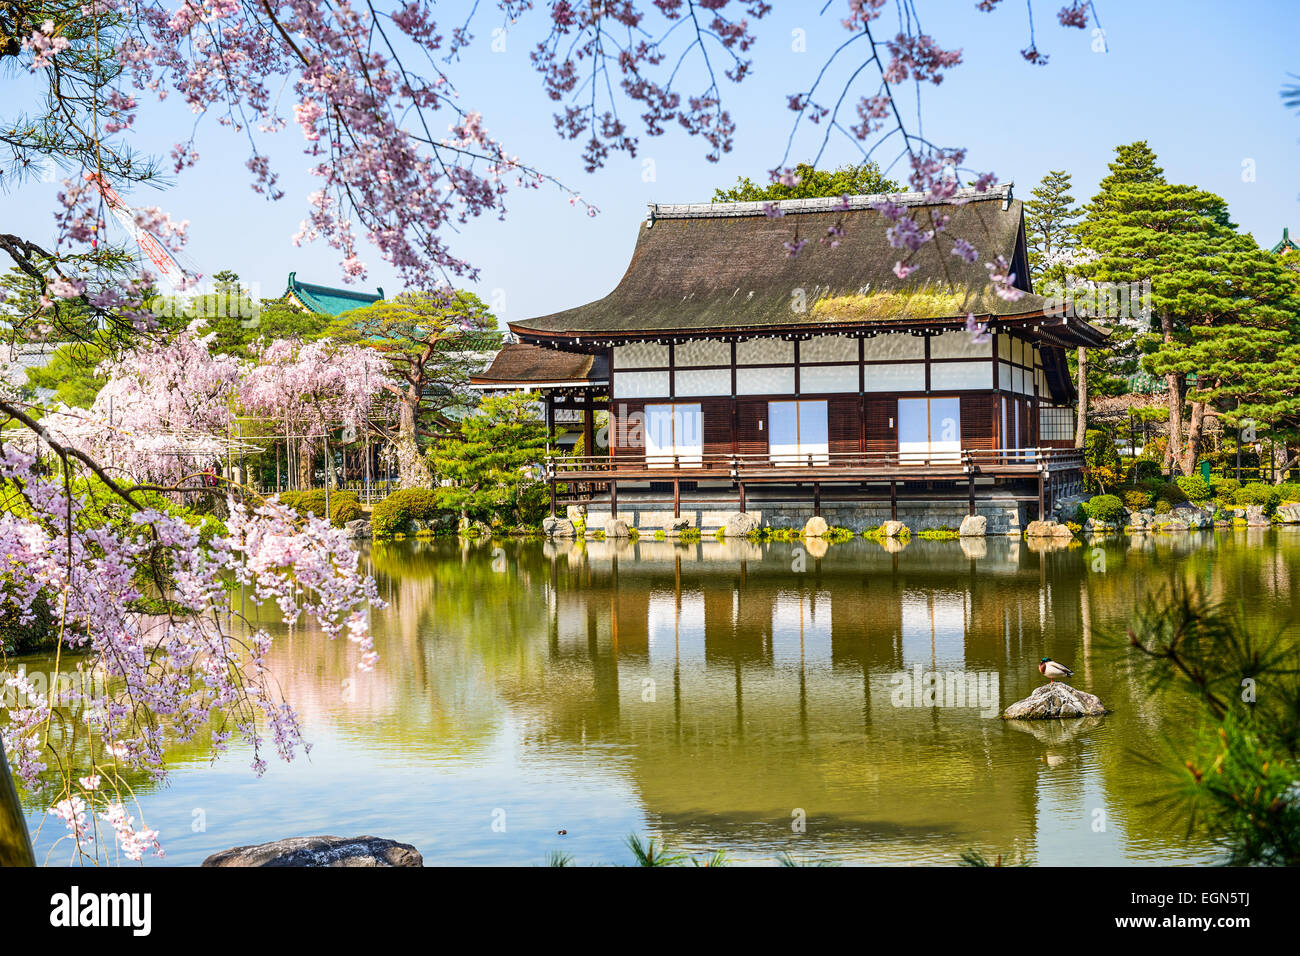 Kyoto, Japan spring at Heian Shrine's pond garden. - Stock Image